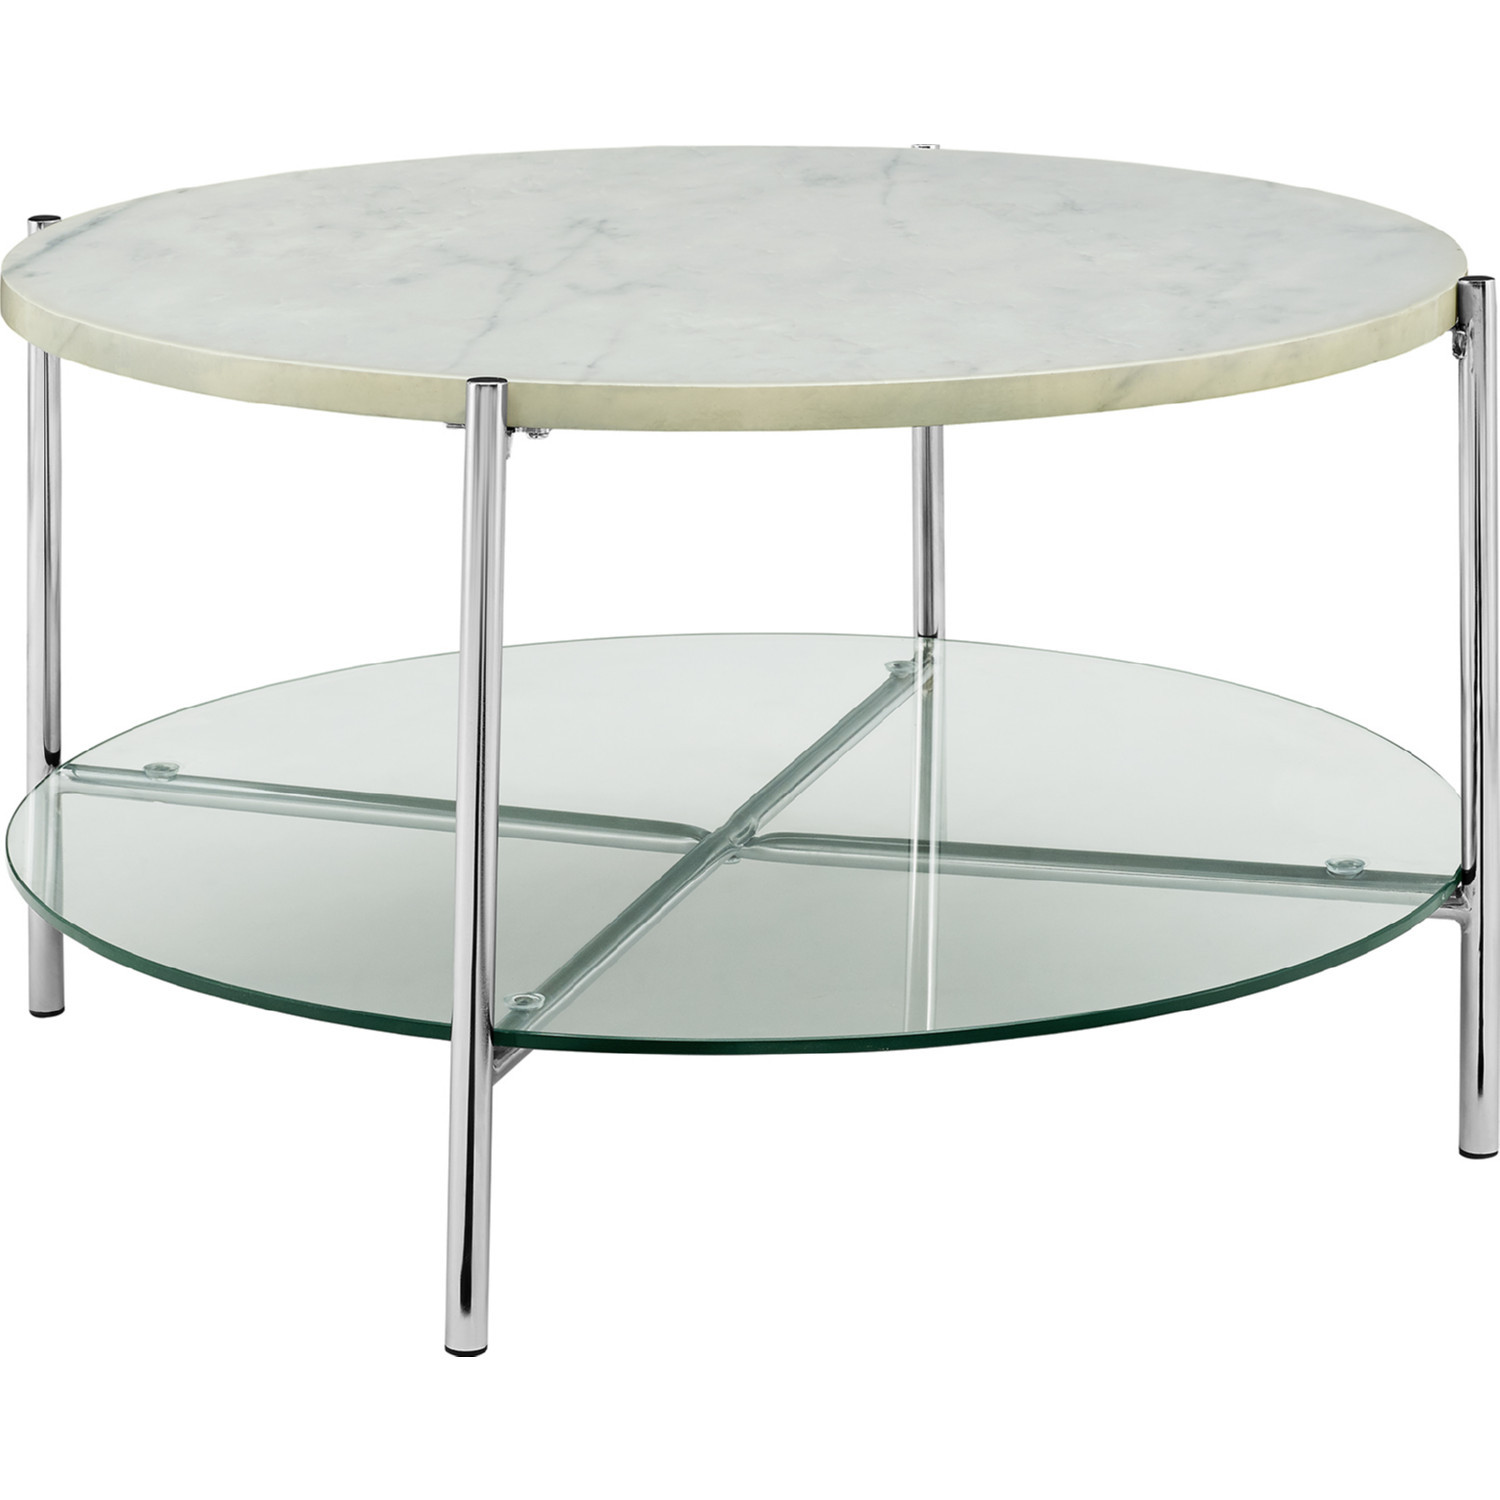 Astonishing Modern Round Coffee Table In White Faux Marble Glass Chrome By Walker Edison Bralicious Painted Fabric Chair Ideas Braliciousco